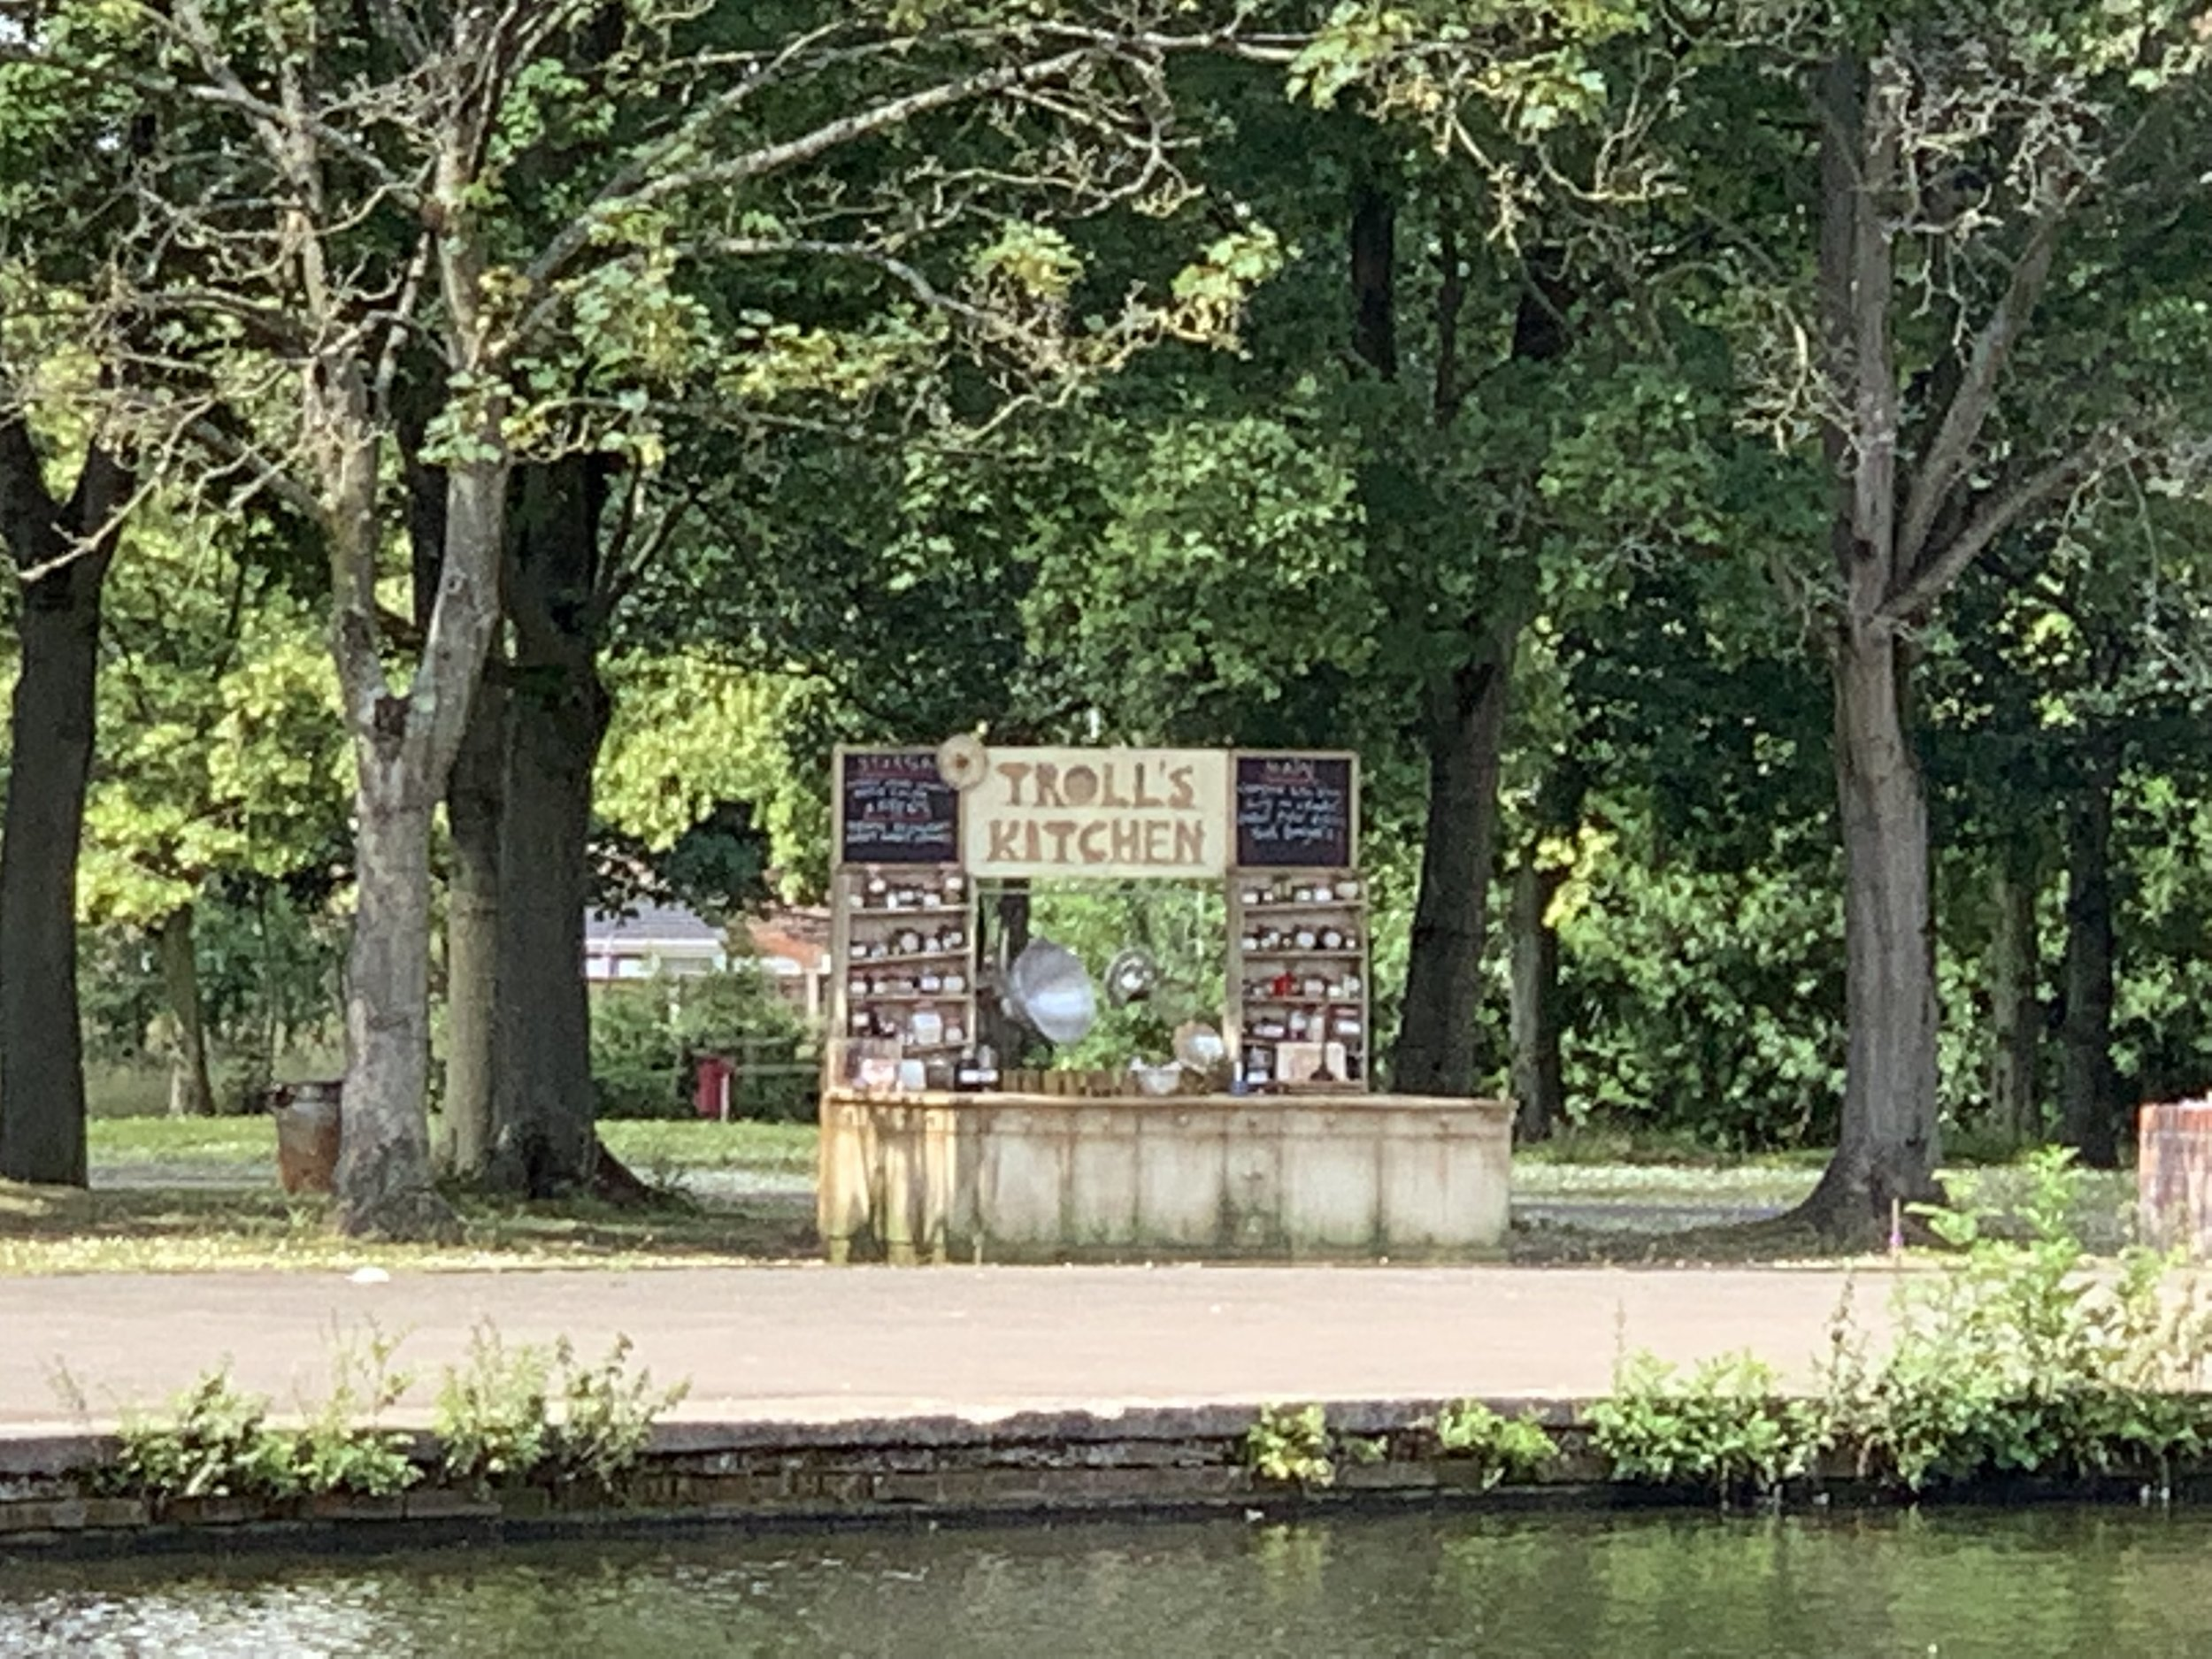 The Troll's Kitchen in situ at Platt Fields Park in Manchester for Picnic in the Park, July 7th 2019